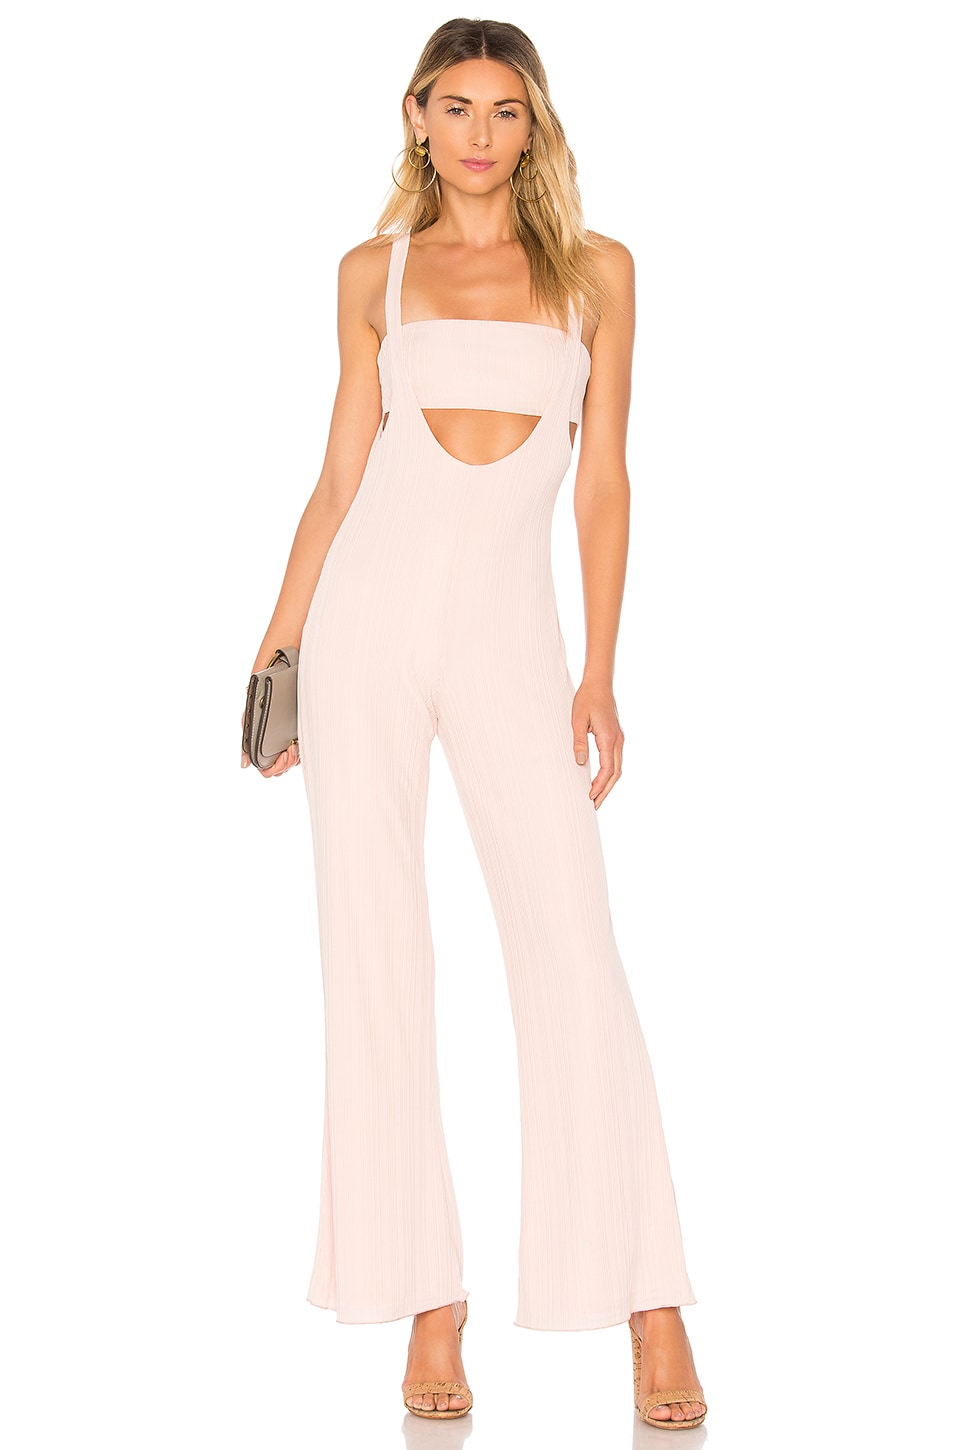 House of Harlow 1960 x REVOLVE Morin Jumpsuit in Rose Pink